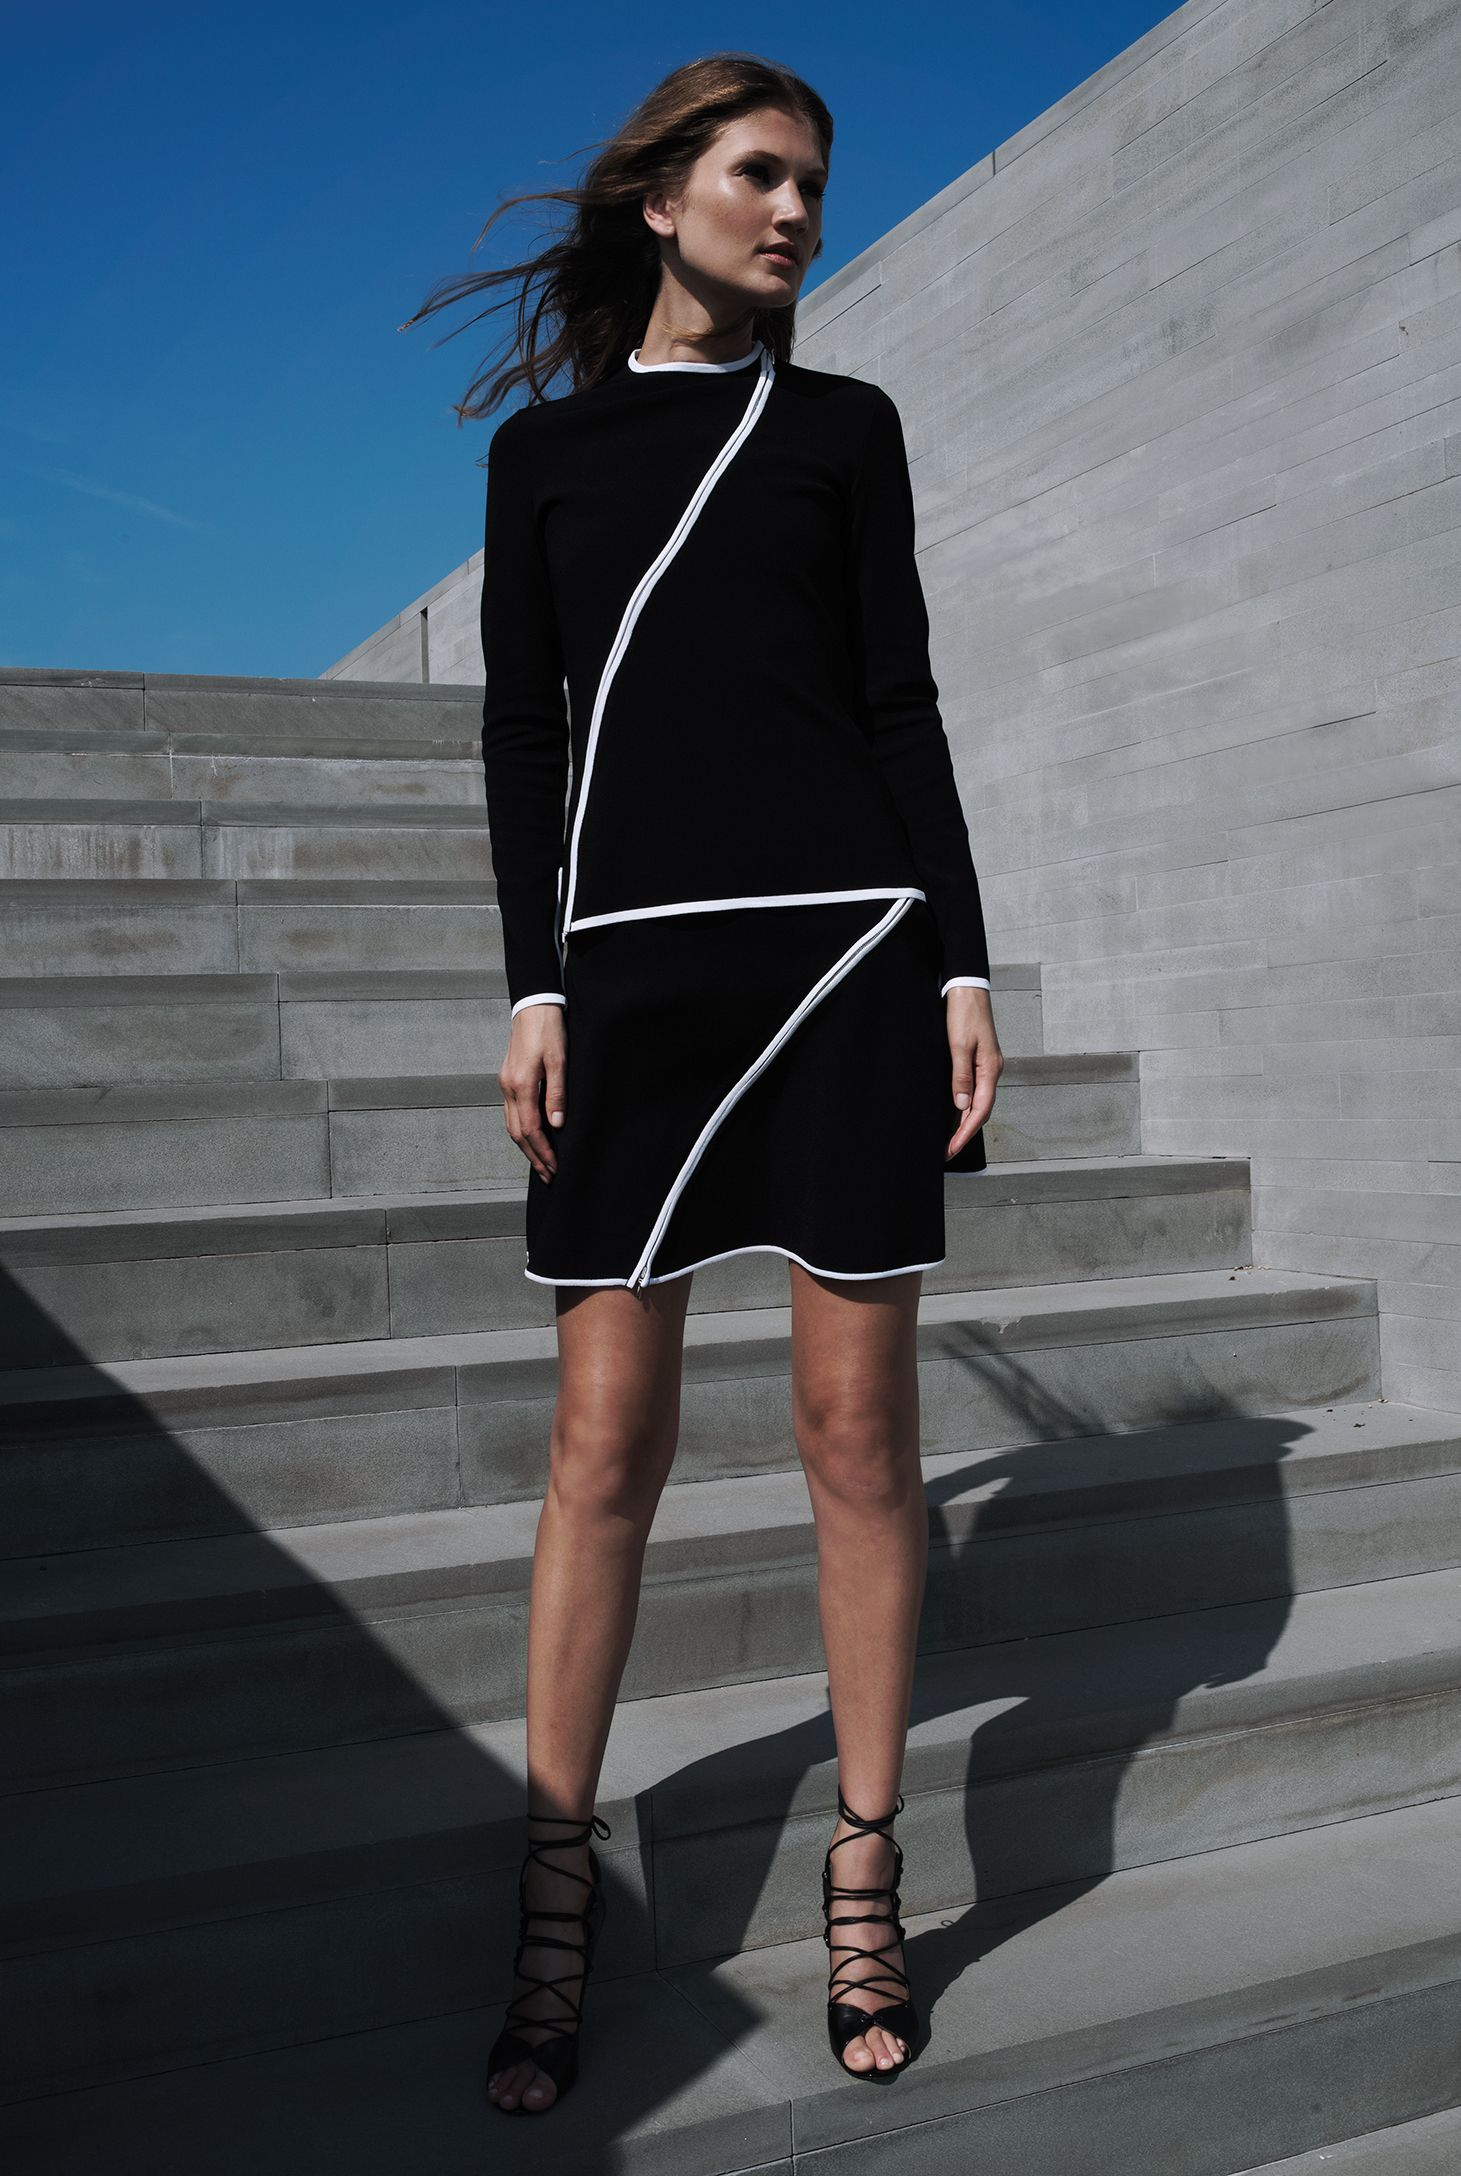 Paula's vision makes for a modernistic statement piece. Black skirt with asymmetrical diagonal zipper front to back. Yoke waist, black flared skirt. Product of France. Shown with Chantal Jacket by Paula Hian.   #classysuit #modernoutfit #professionaloutfits #workoutfits #brunchfashion #frenchstyle #womensblazer #powersuits #womenssuits #weartowork #suitsforwork #workstyle #officechic #officefashion #officestyle #pencilskirts #skirtsuit #skirtoutfit #peplumjackets #womensblazers #workoutfits